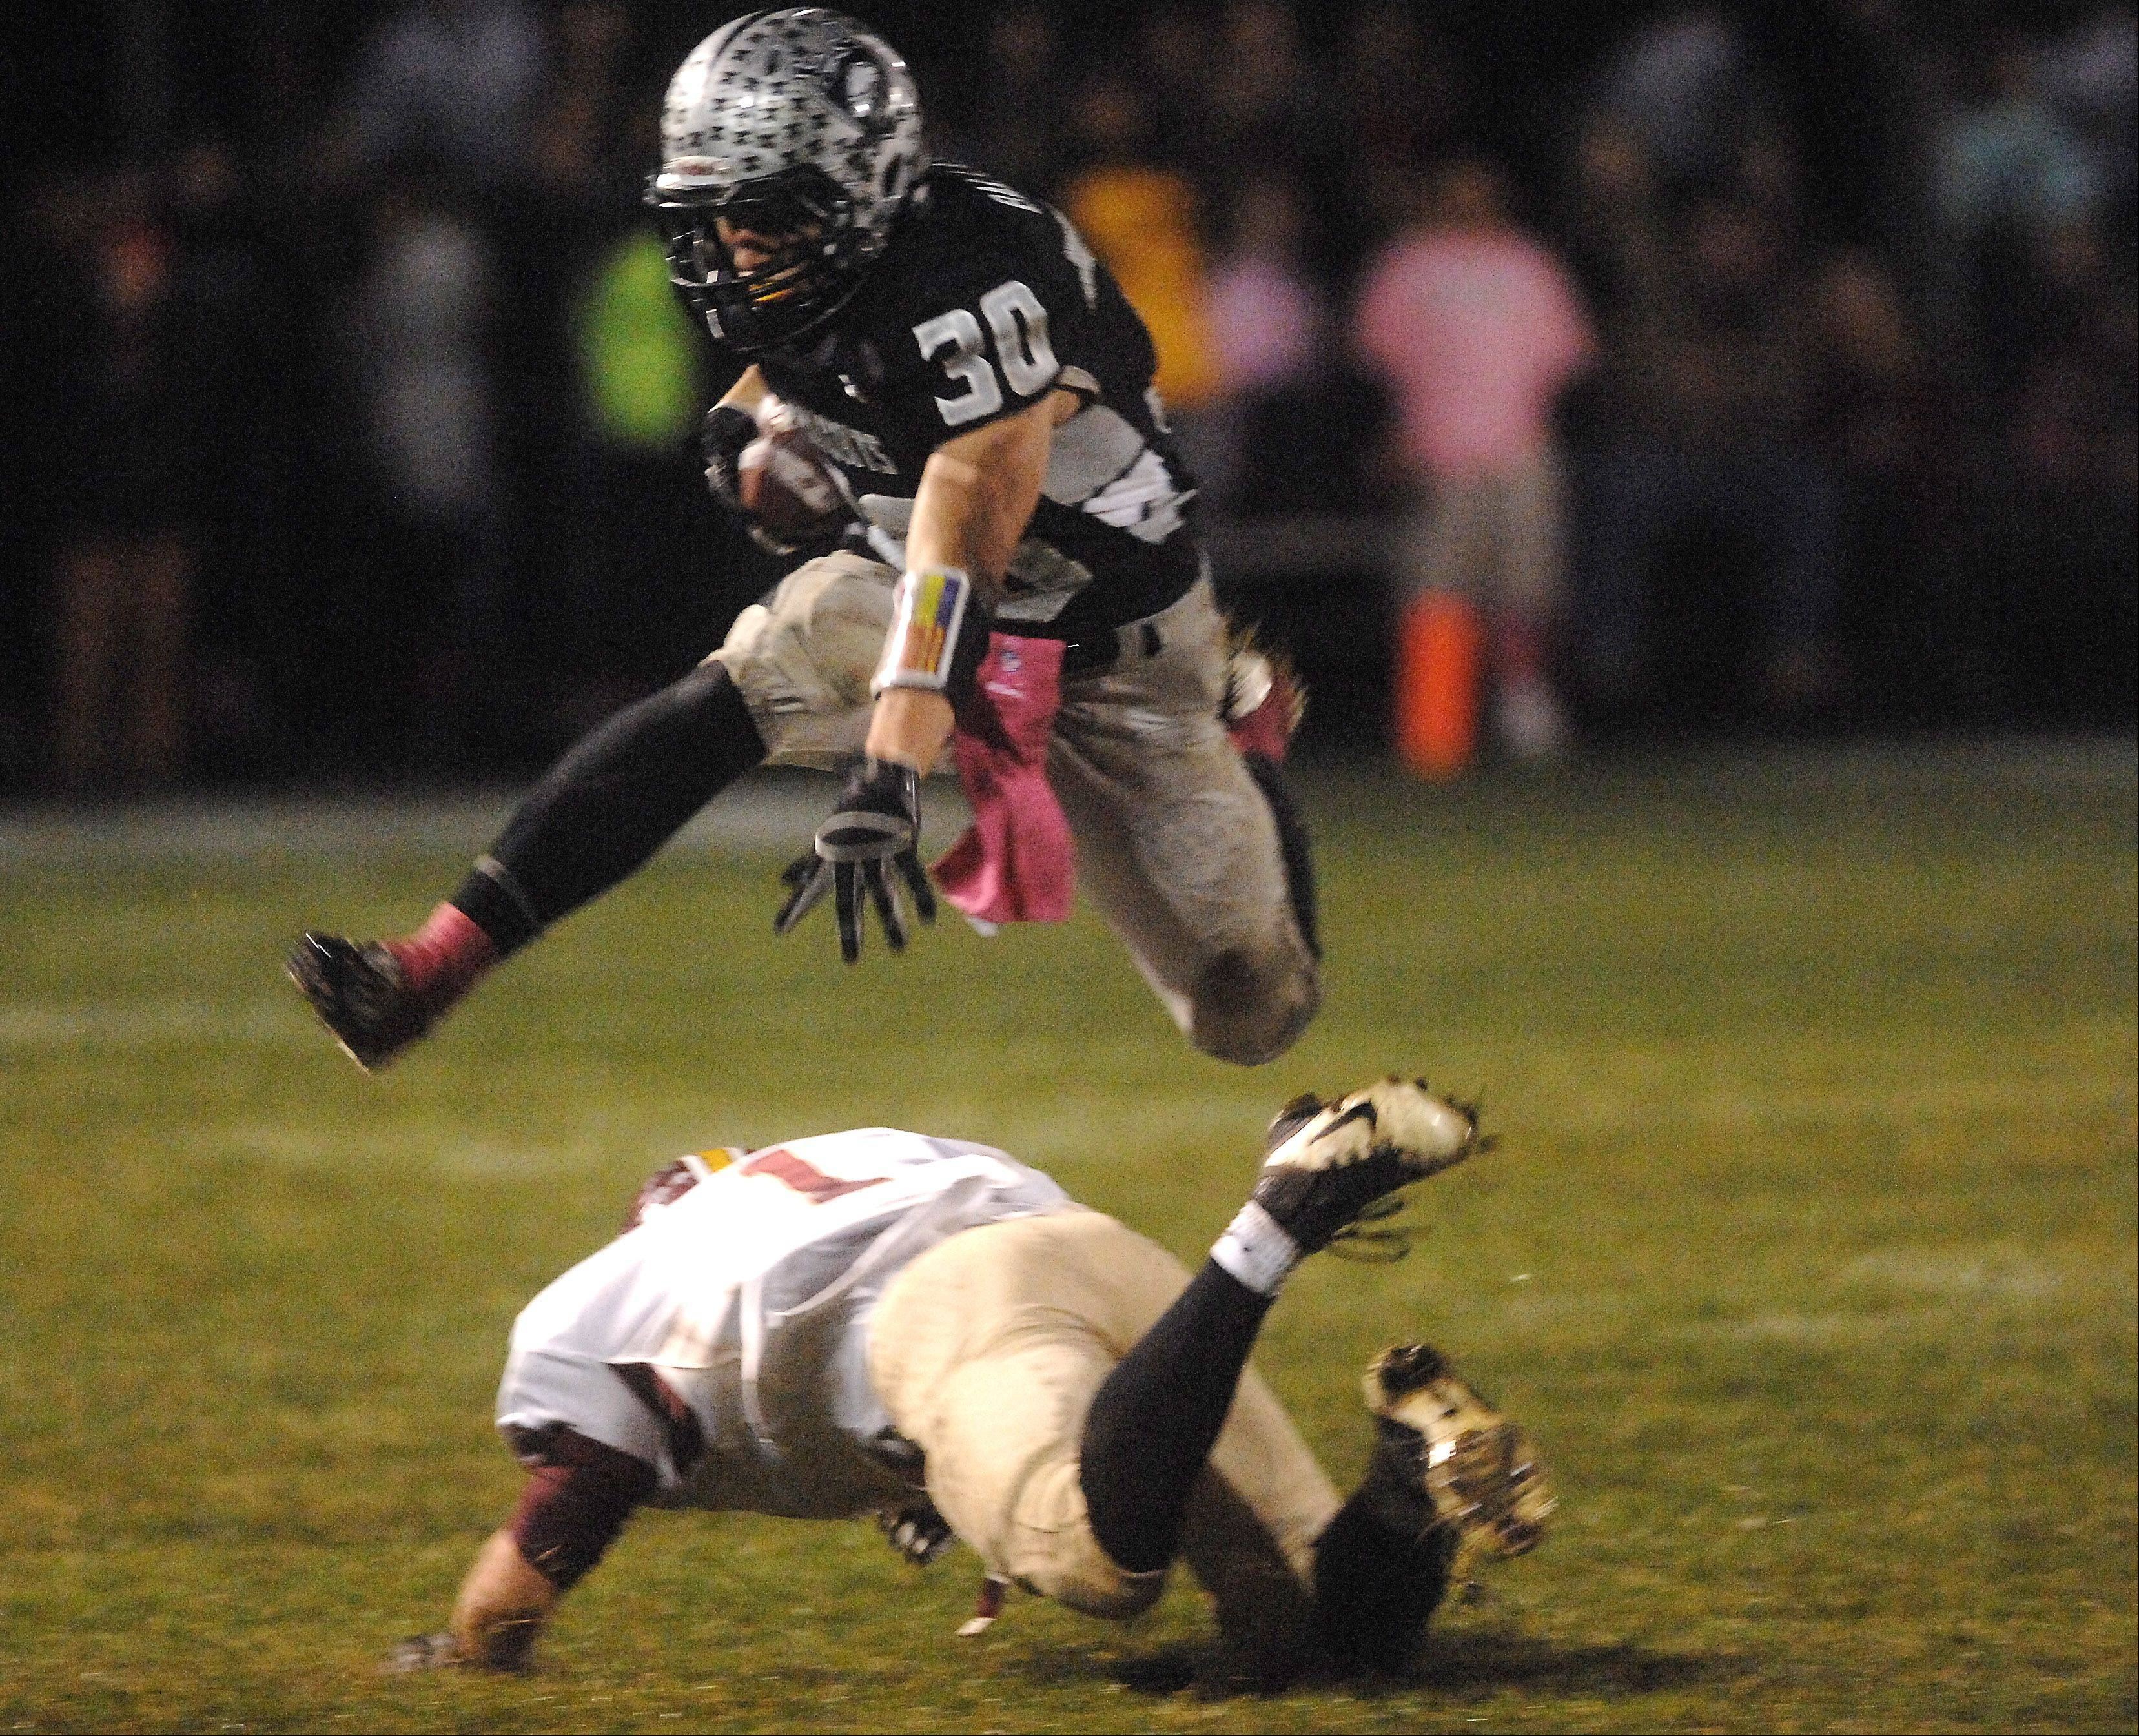 Kaneland�s Jesse Balluff hurdles a would-be Morris tackler during Friday�s game in Maple Park.